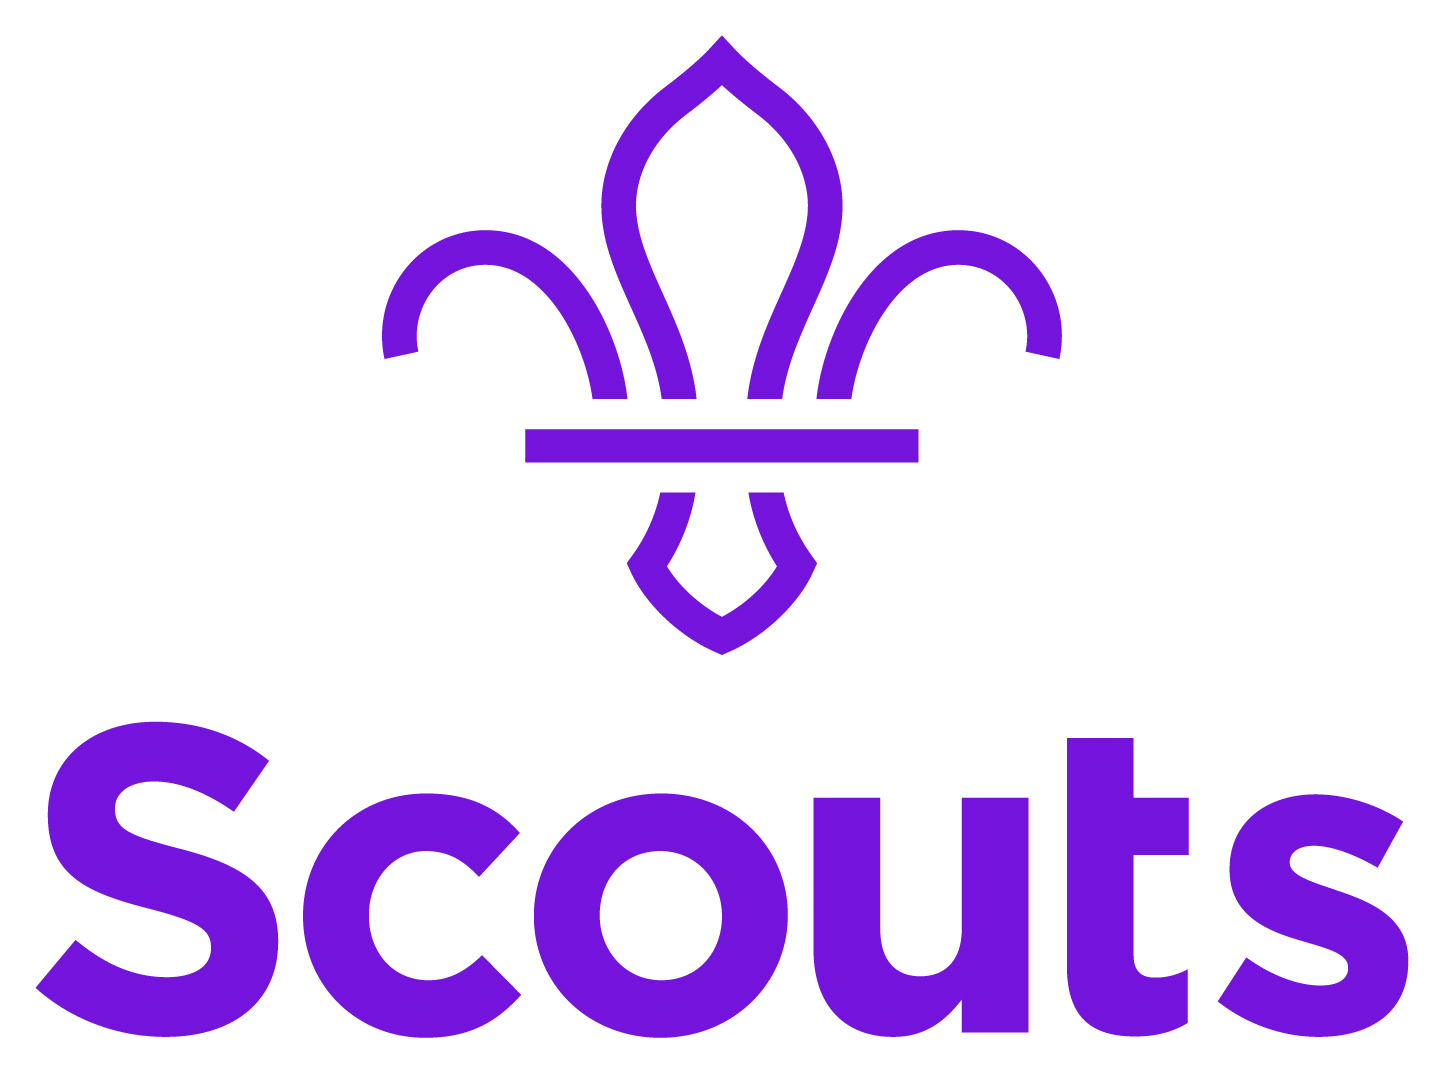 5th Testwood Scouts